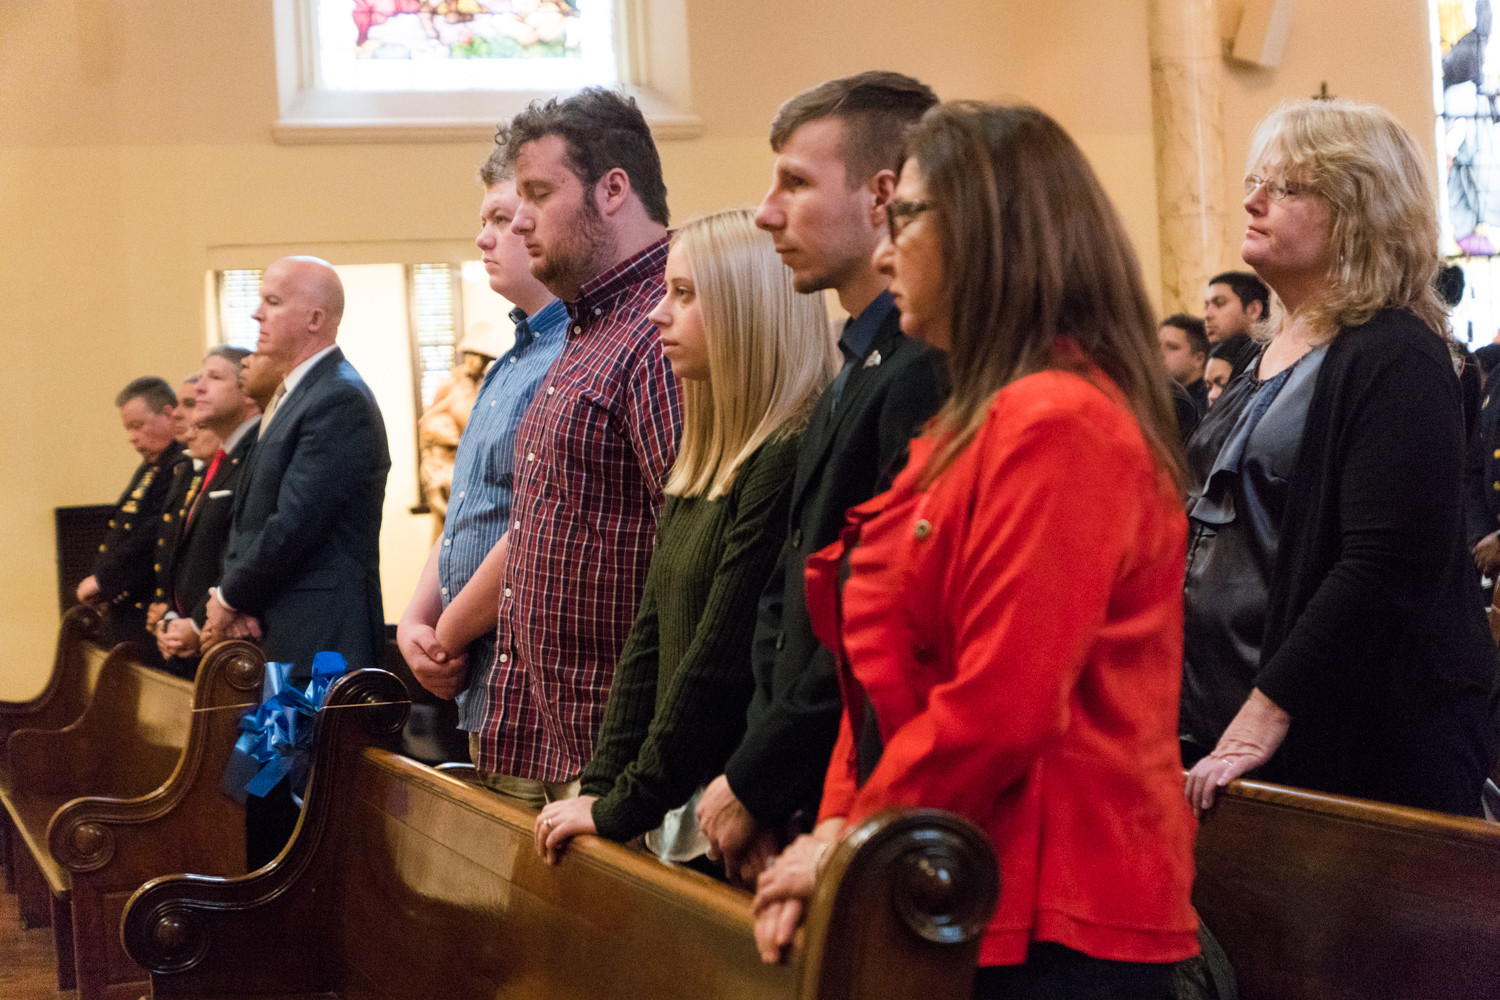 Neil Forster's family stands during the 20th anniversary memorial Mass in the Chapel of the Immaculate Conception at the College of Mount Saint Vincent.